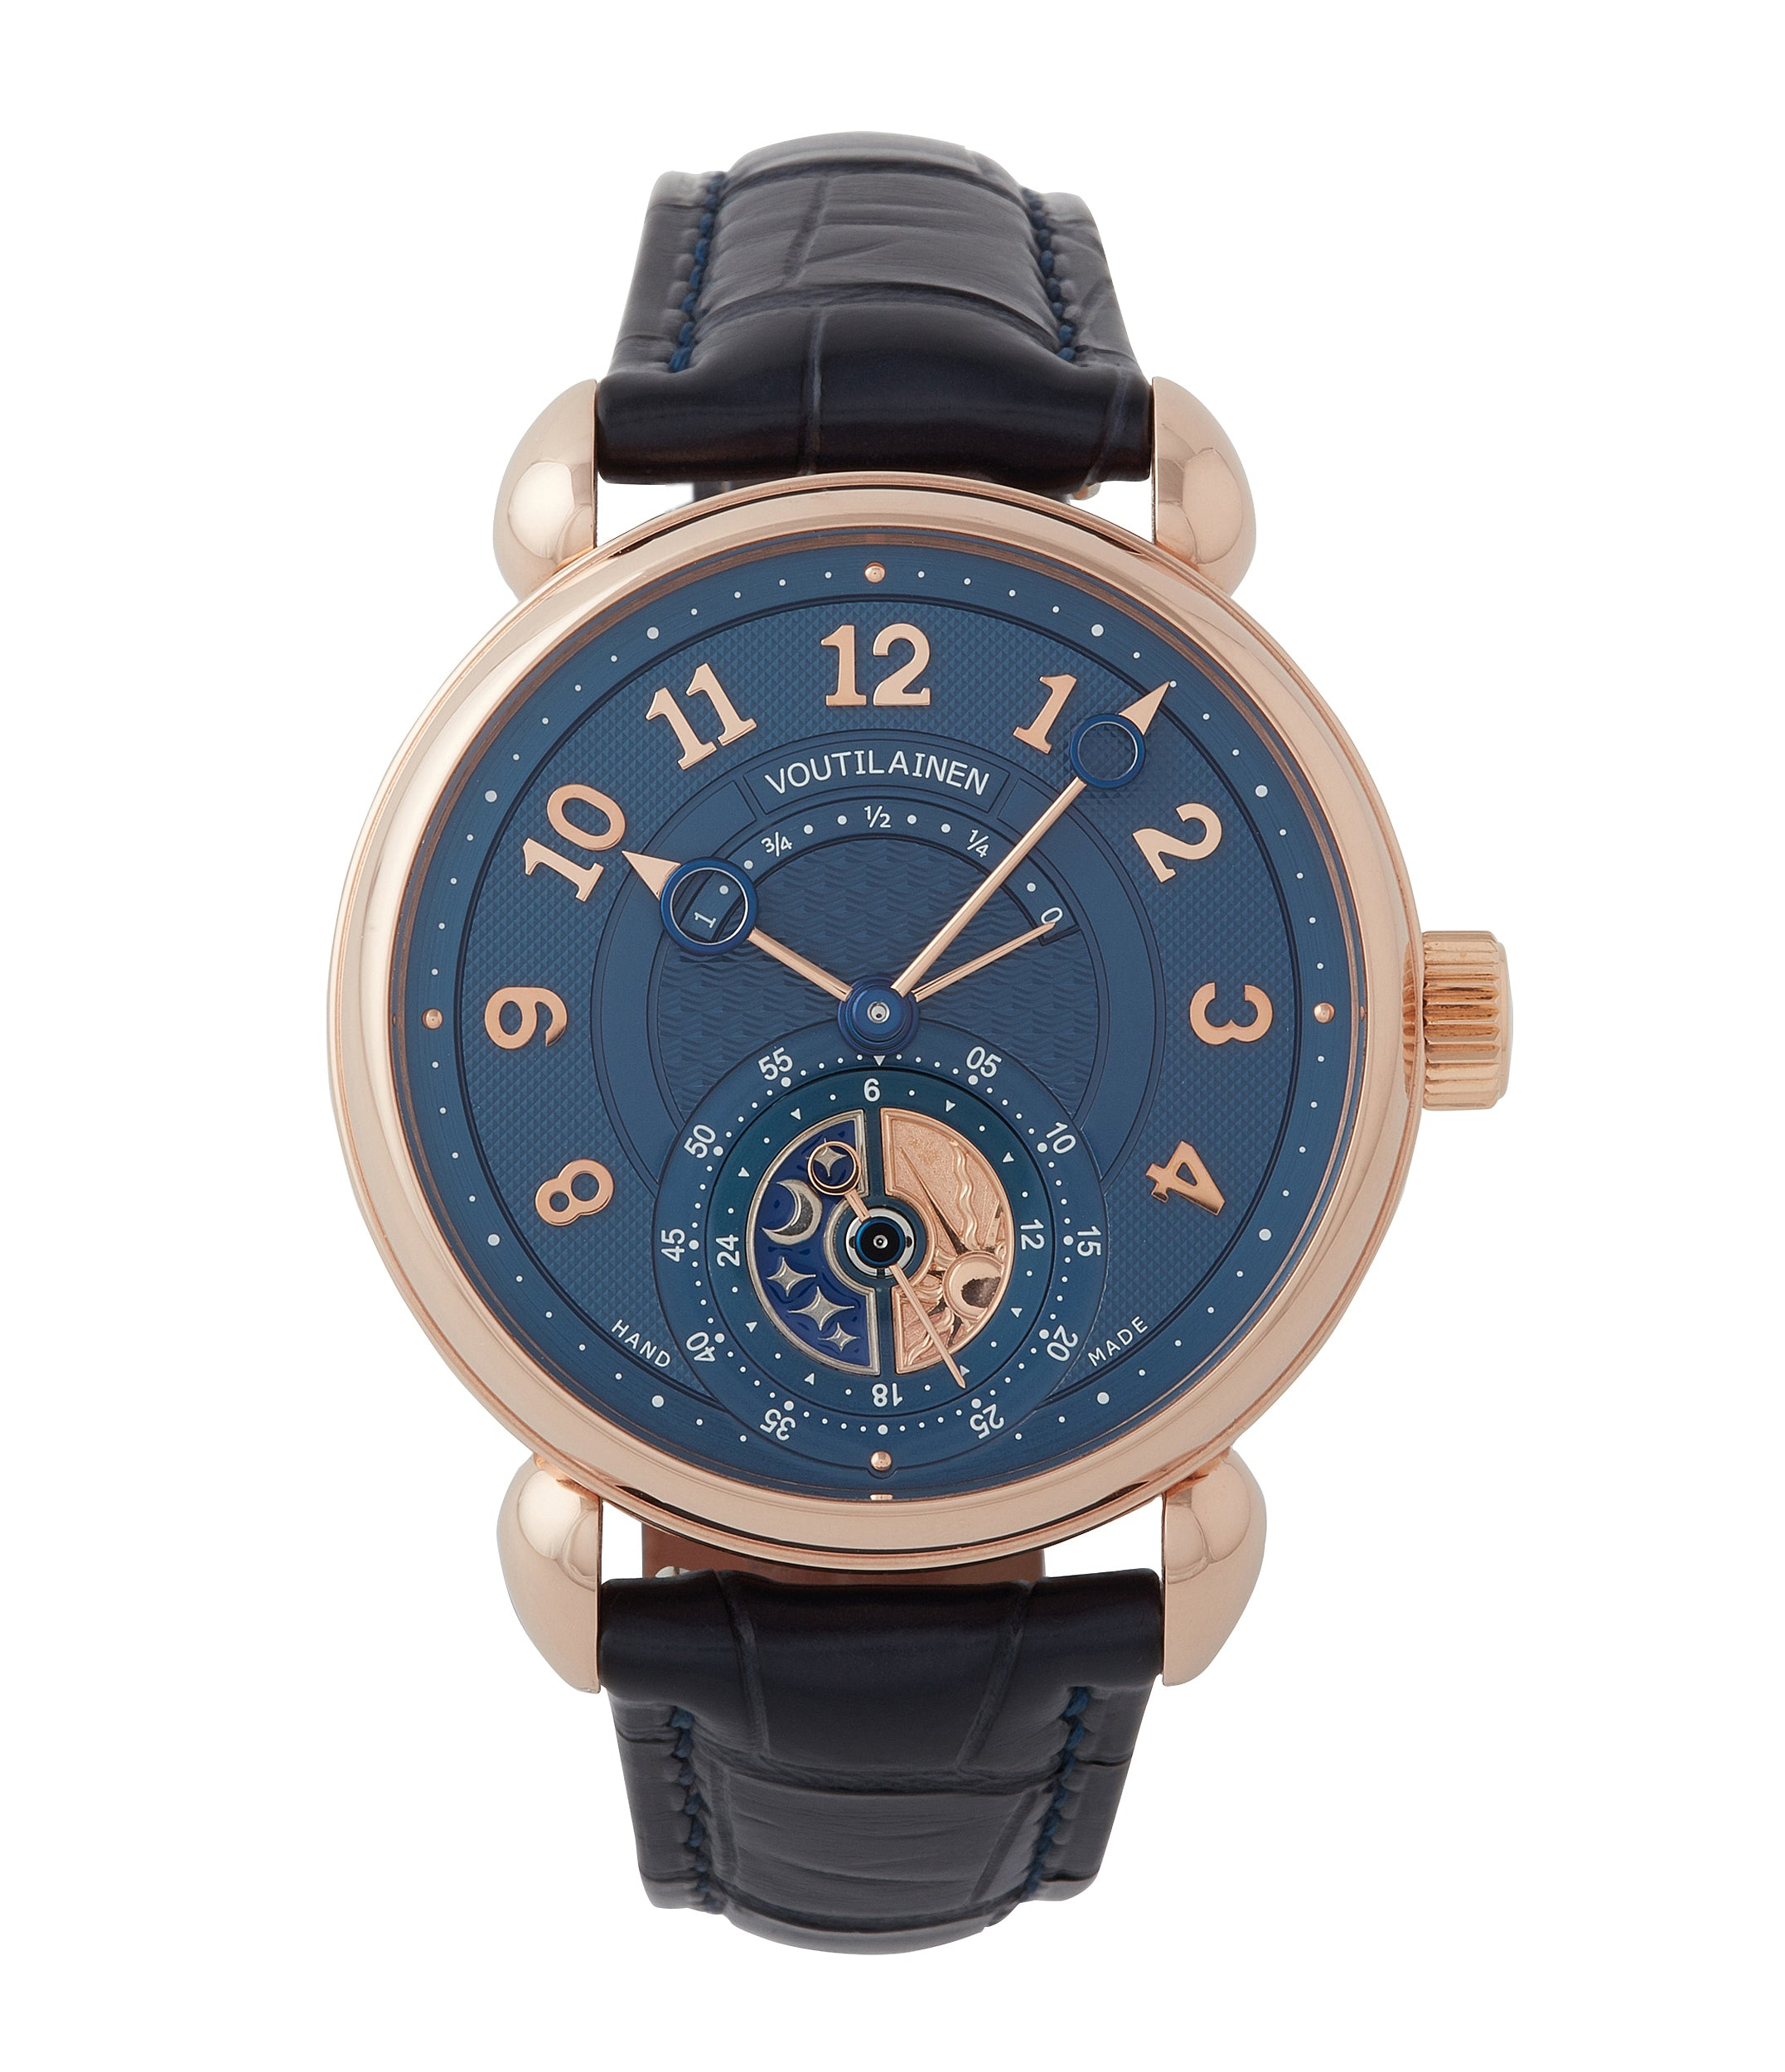 buy Voutilainen unique piece GMT power reserve rose gold dress watch blue dial for sale online at A Collected Man London UK specialist of rare watches